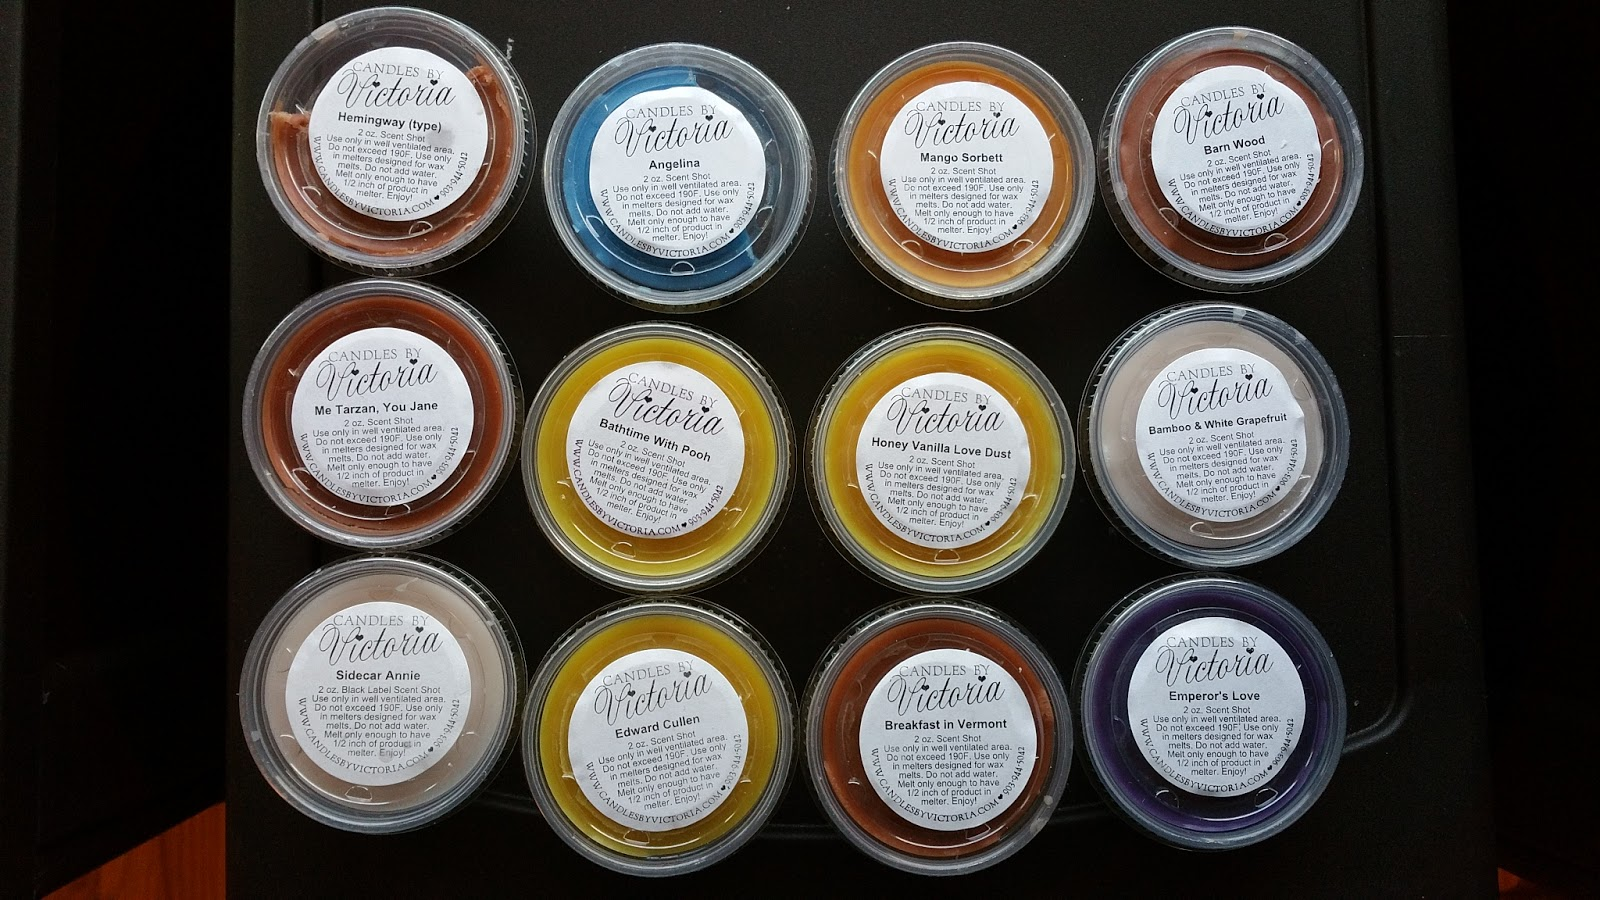 Scented wax melt reviews candles by victoria scented wax for Different brands of candles